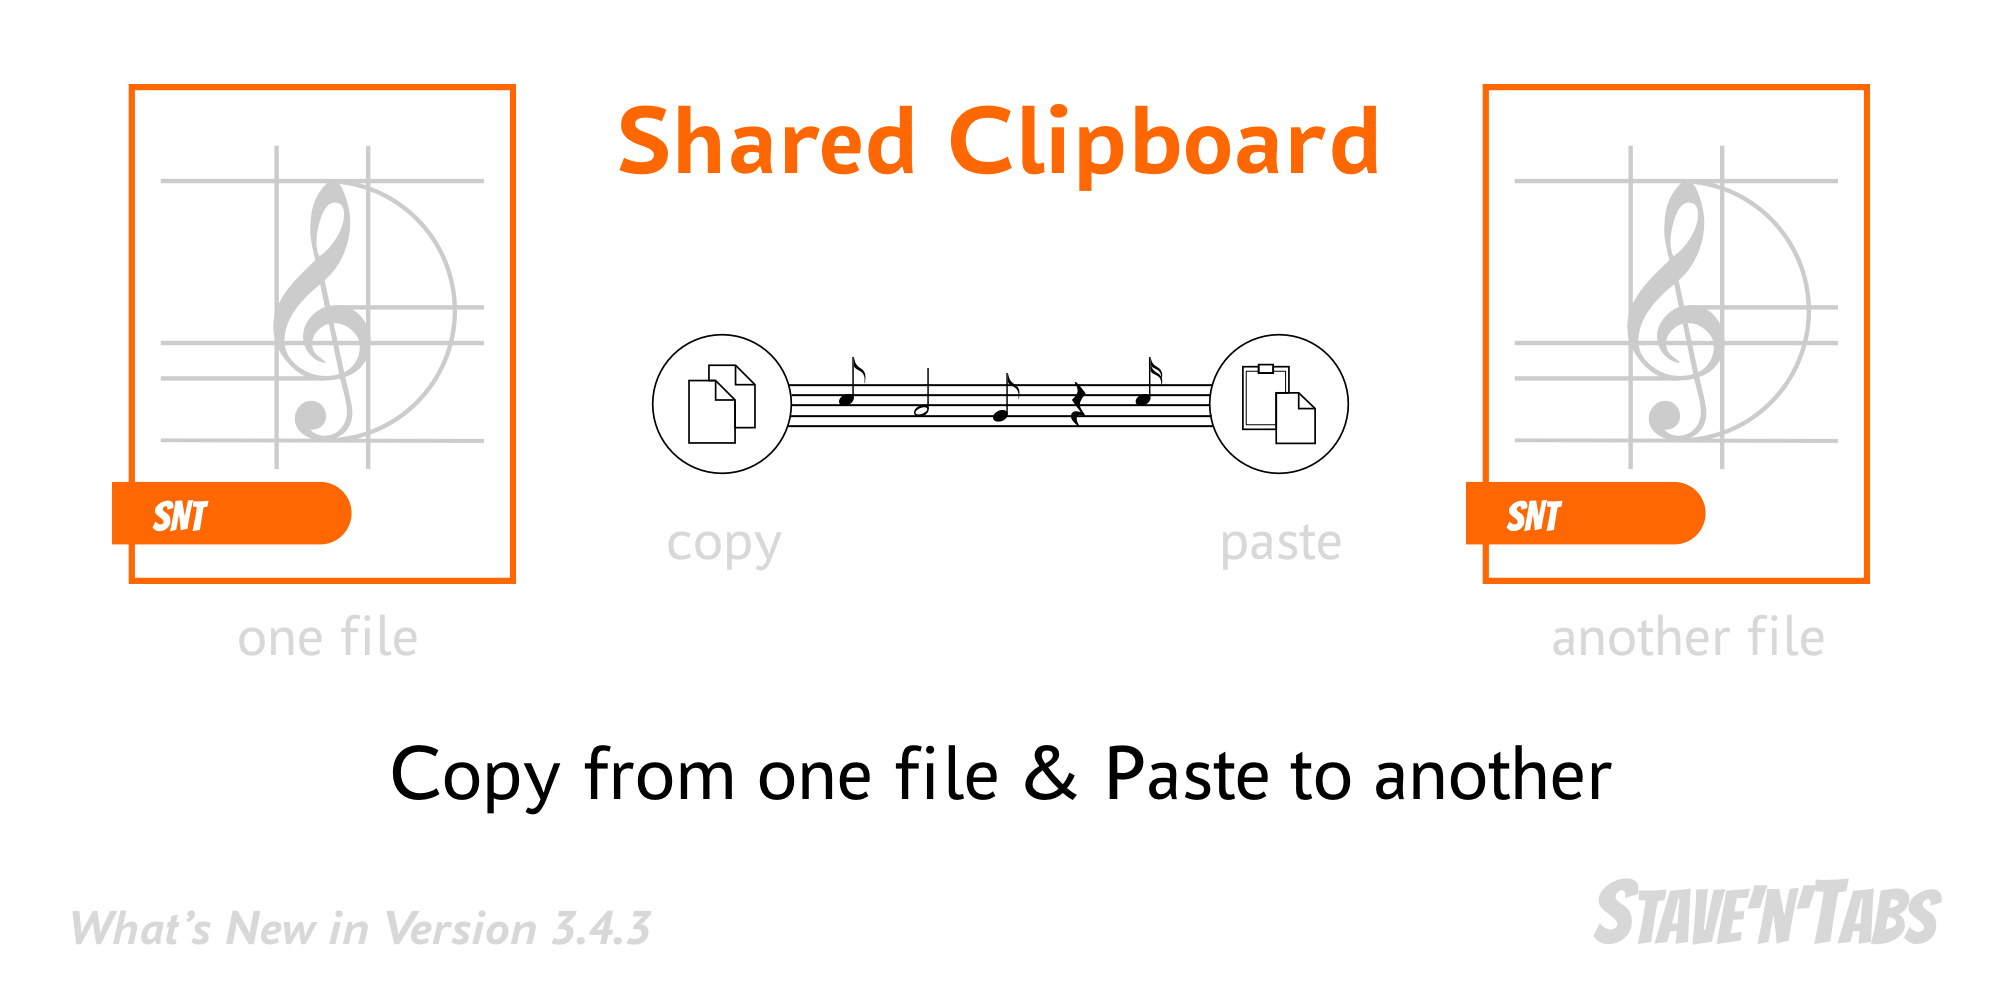 Stave'n'Tabs 3.4.3: Shared clipboard